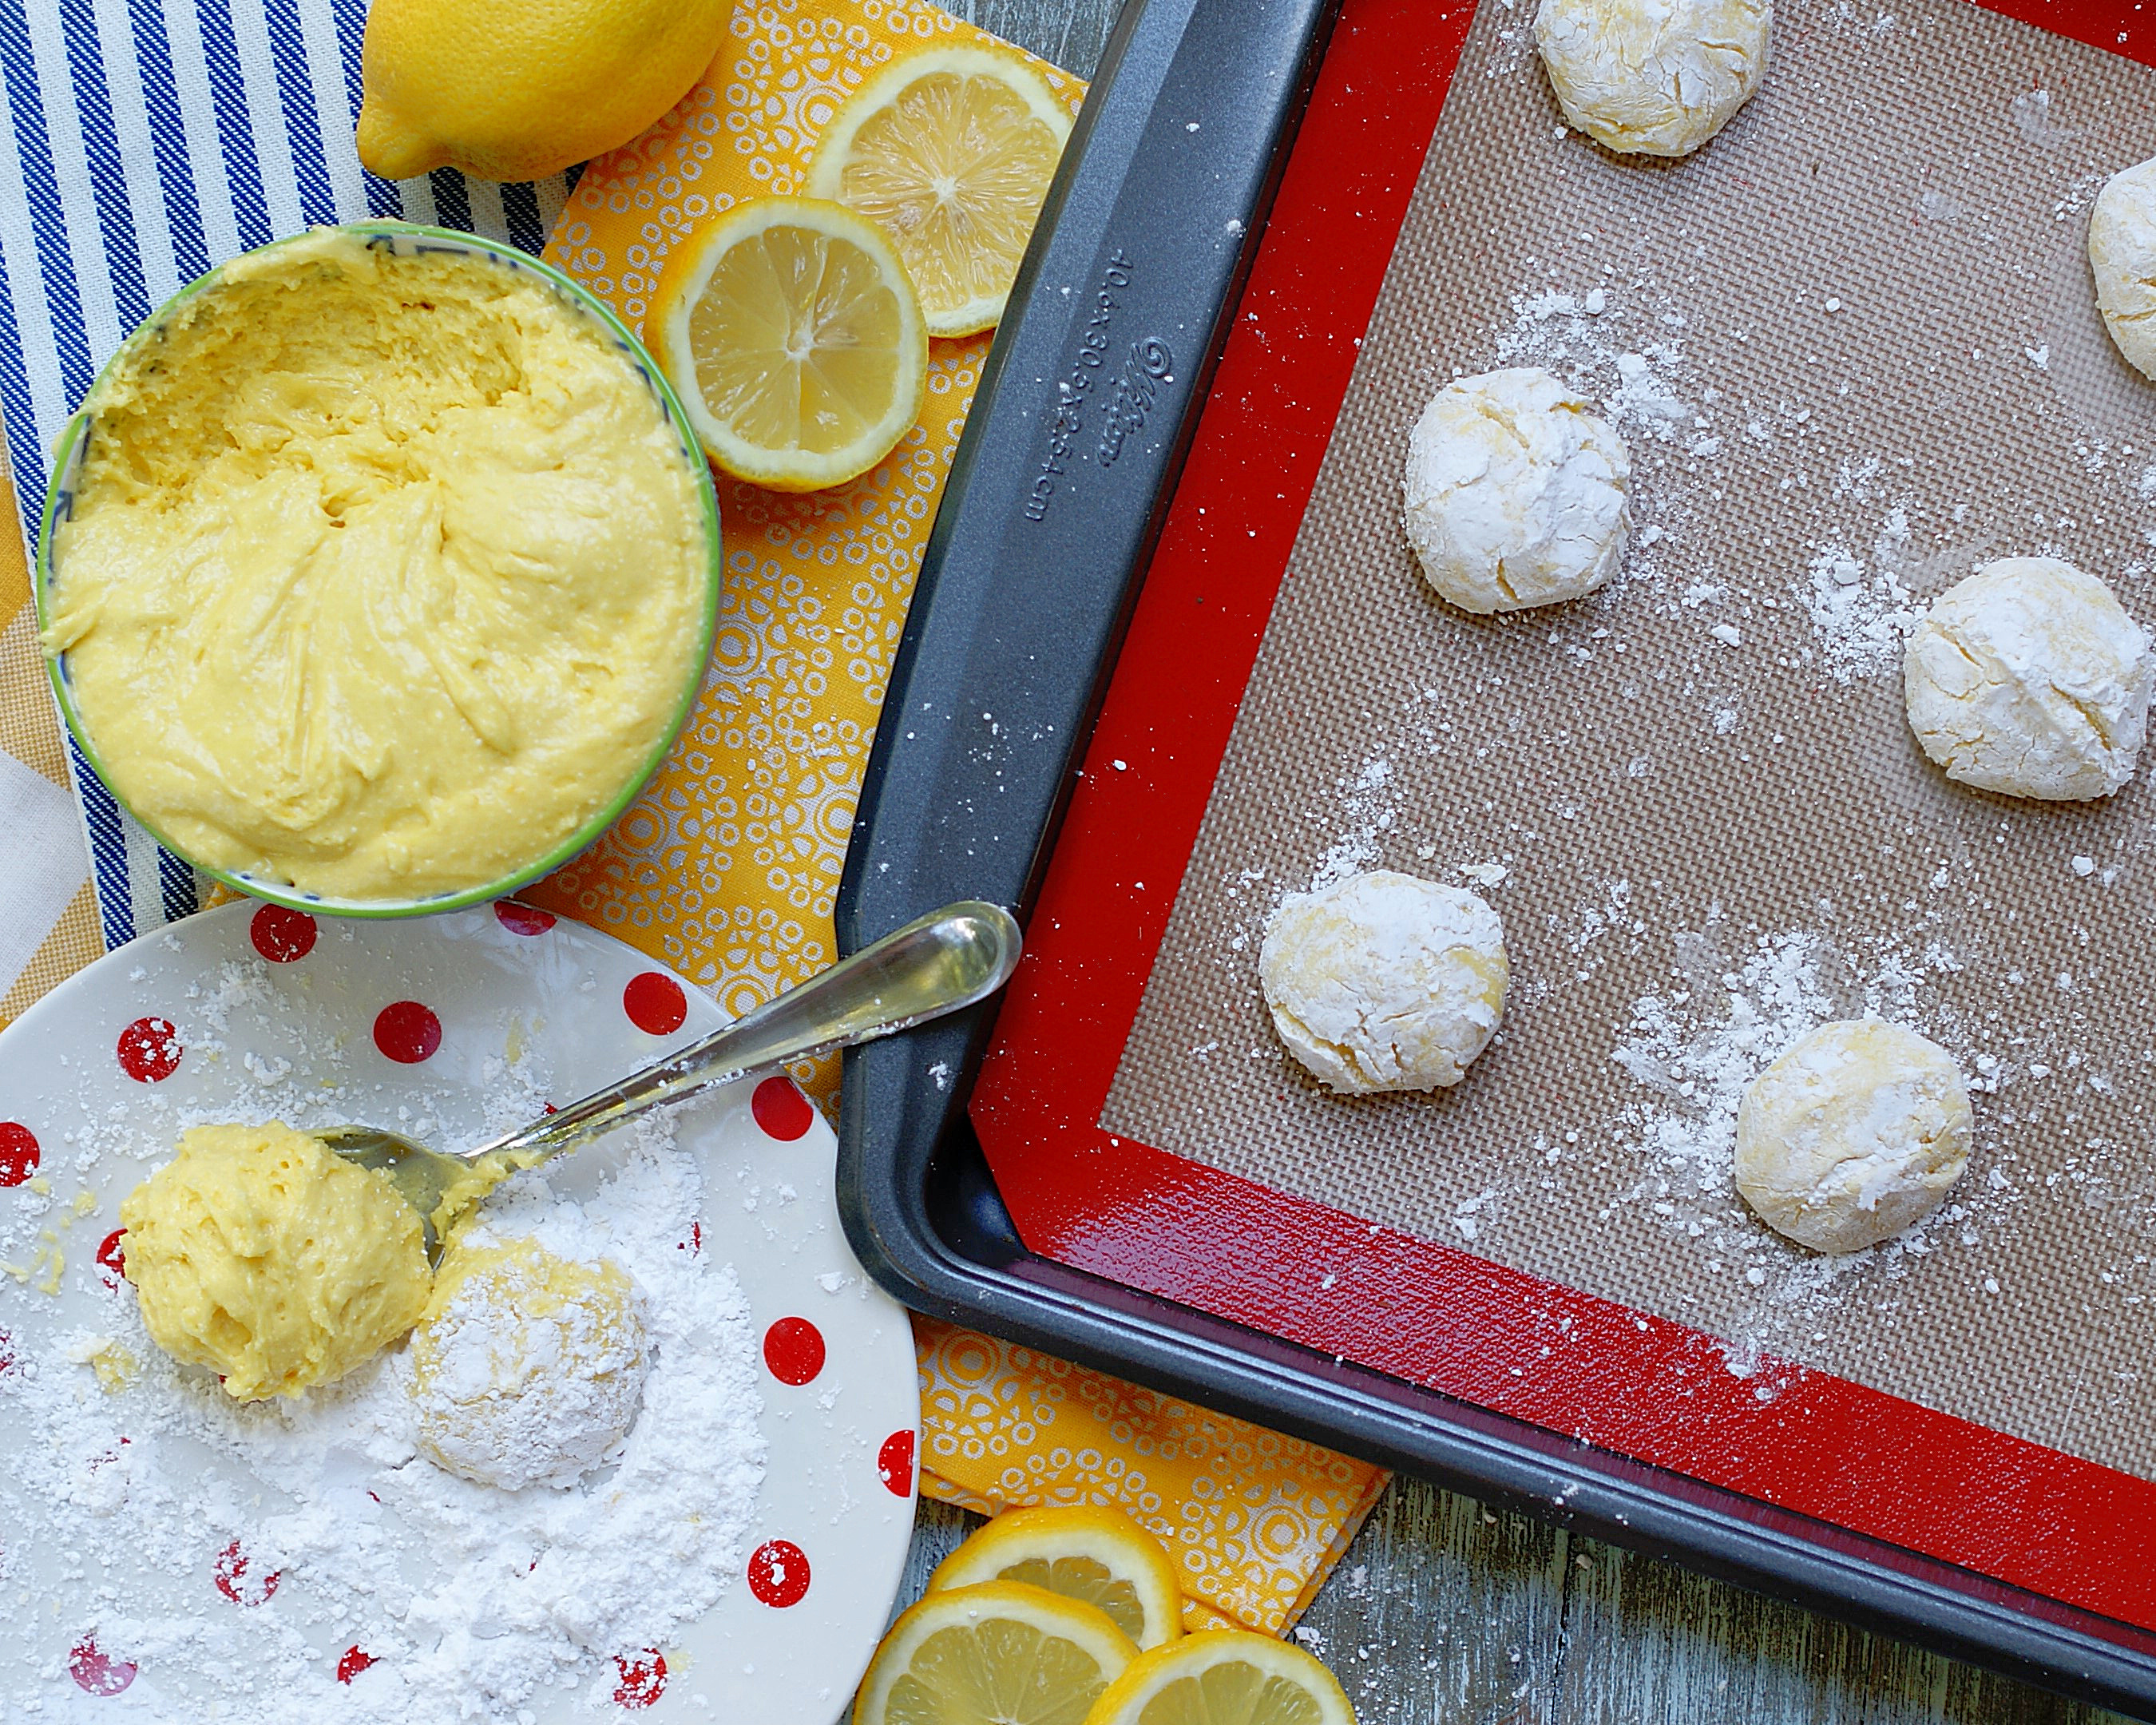 Lemon cookie dough, powdered sugar and rolled cookie balls ready to be baked.